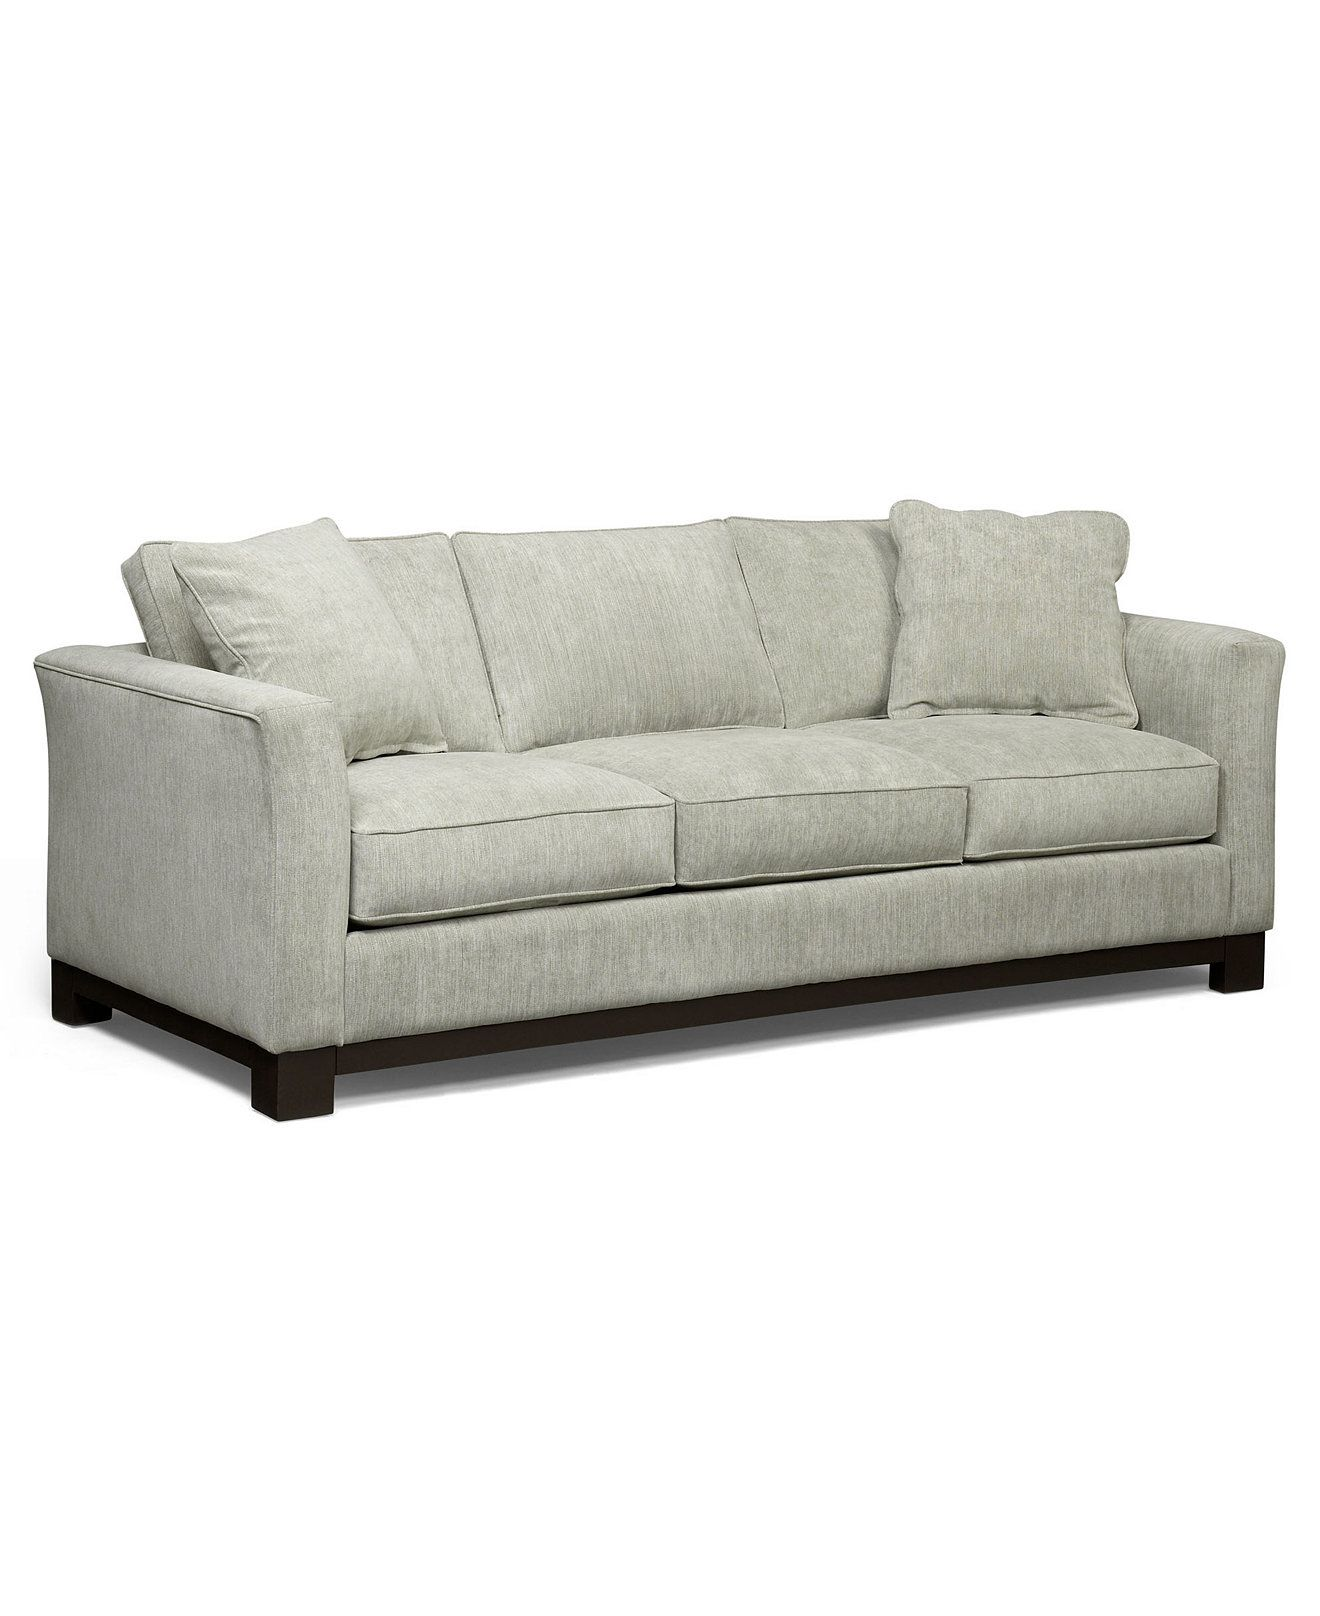 Kenton Fabric Sofa Parchment With Recliners Web Id 683437 Dimensions 88 Quotw X